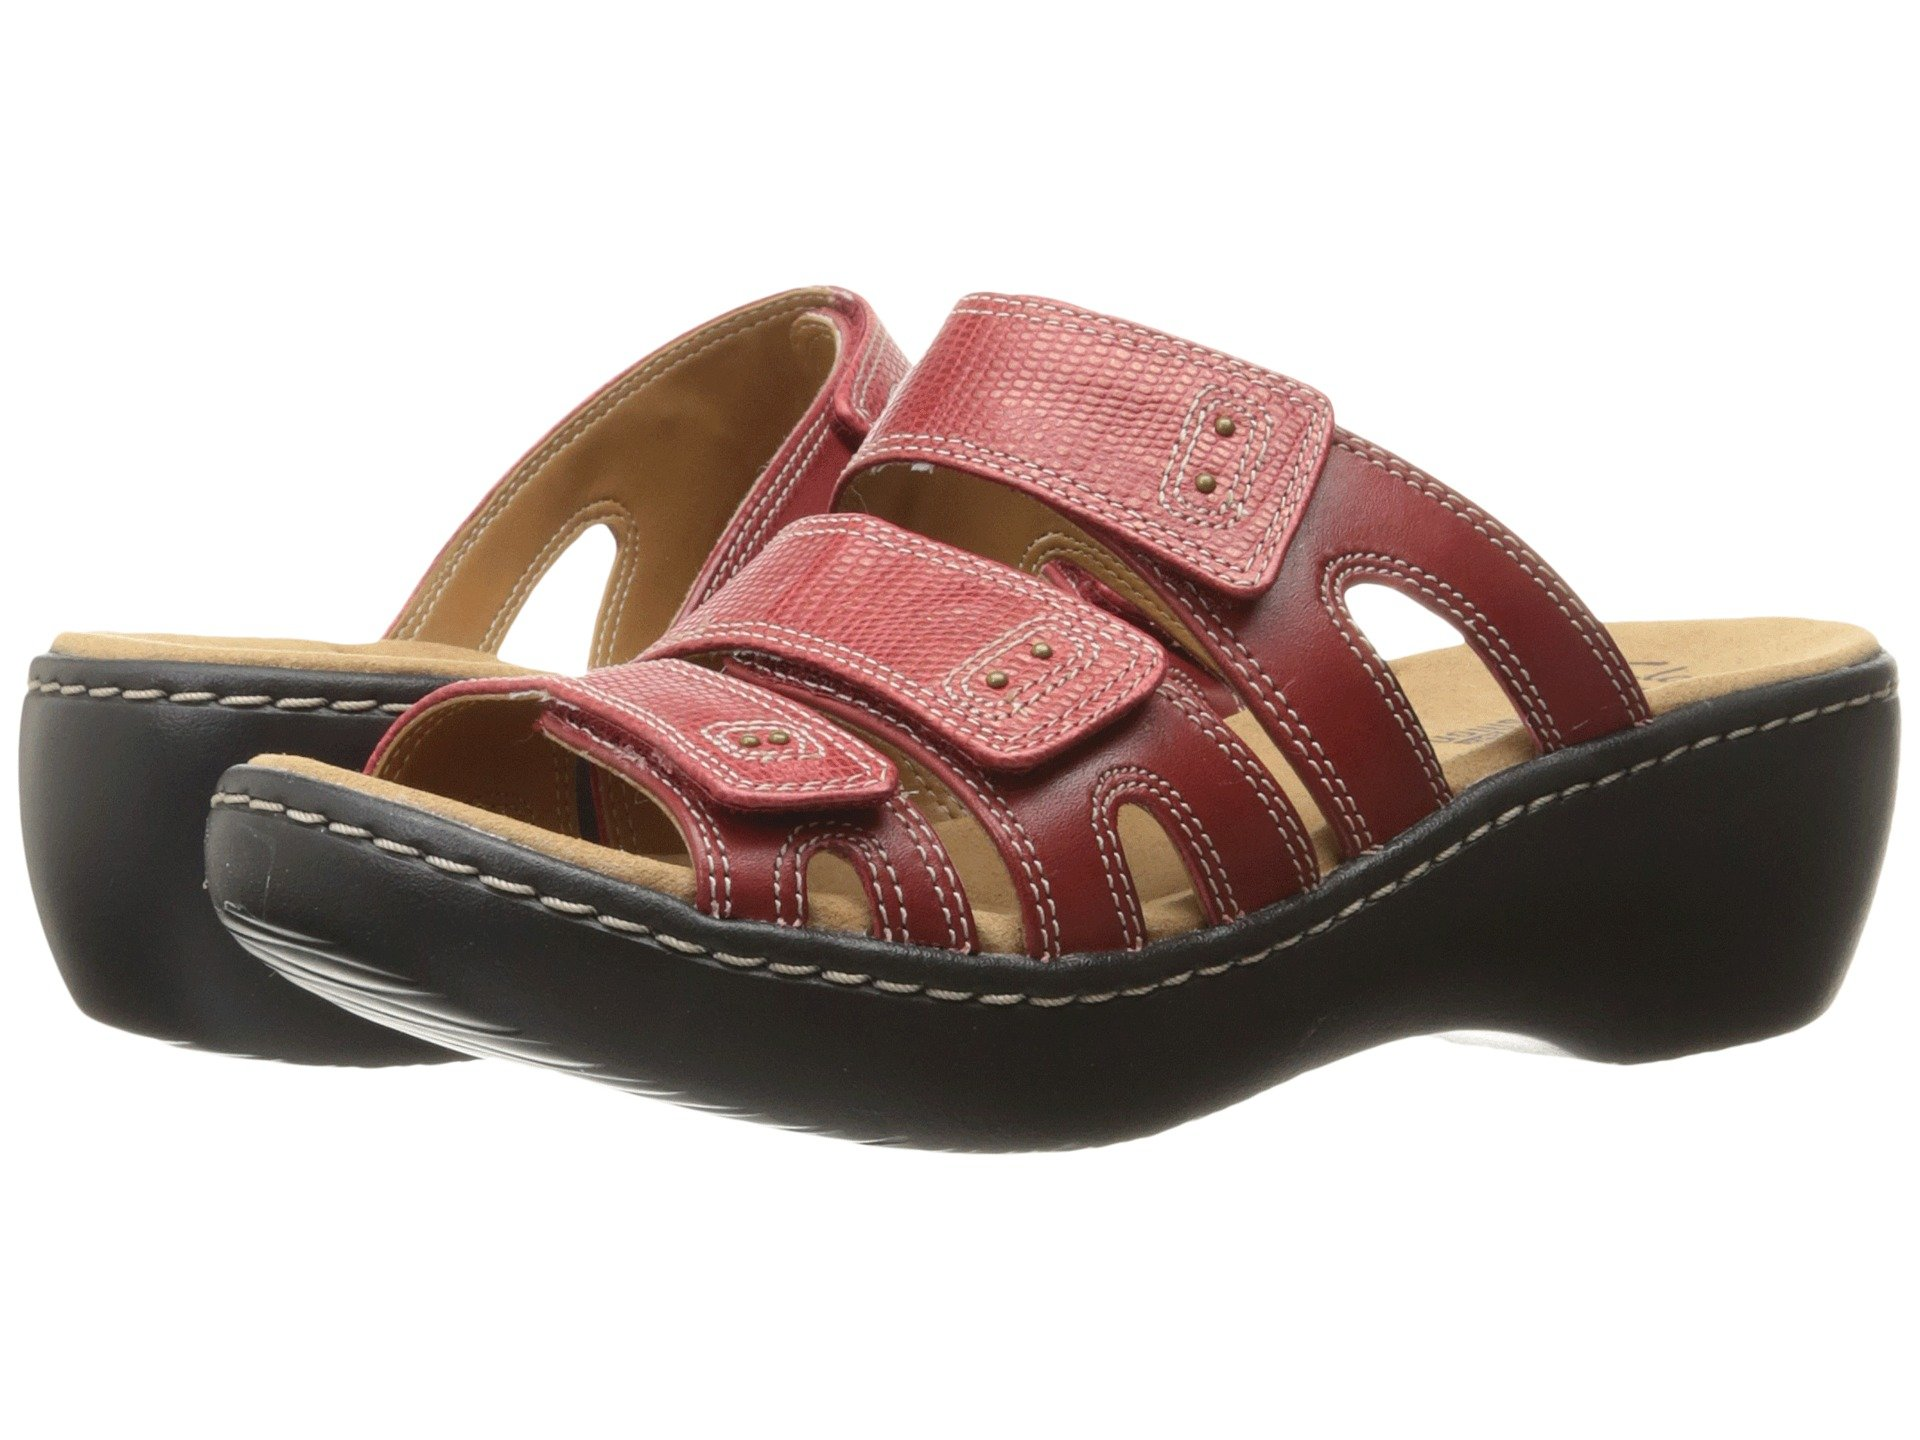 4450ab59a9a5 Clarks Delana Damir In Red Leather Combi